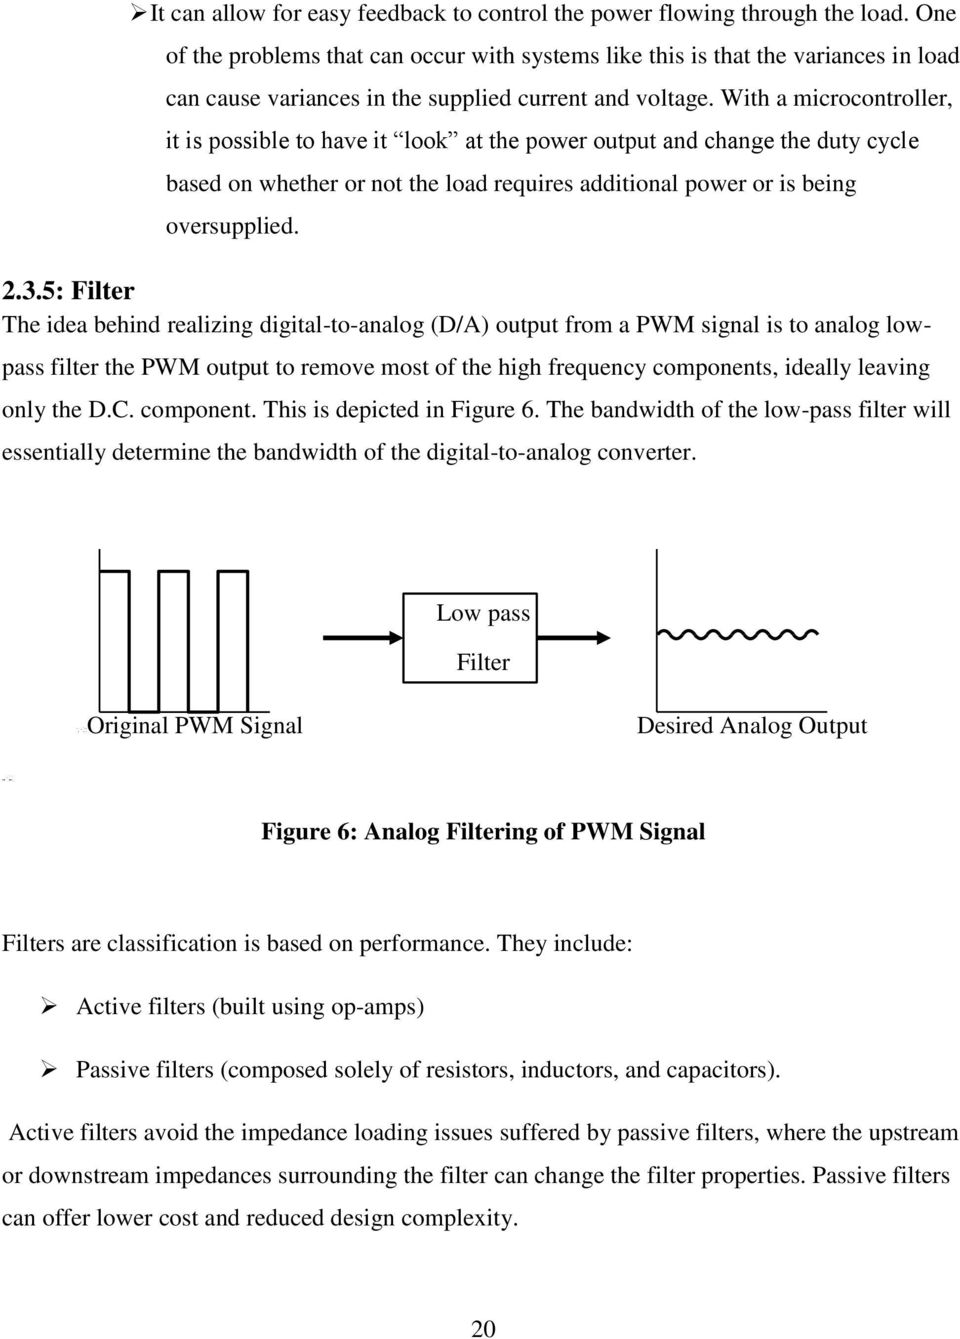 University Of Nairobi Pdf Active And Passive Filters With A Microcontroller It Is Possible To Have Look At The Power Output 21